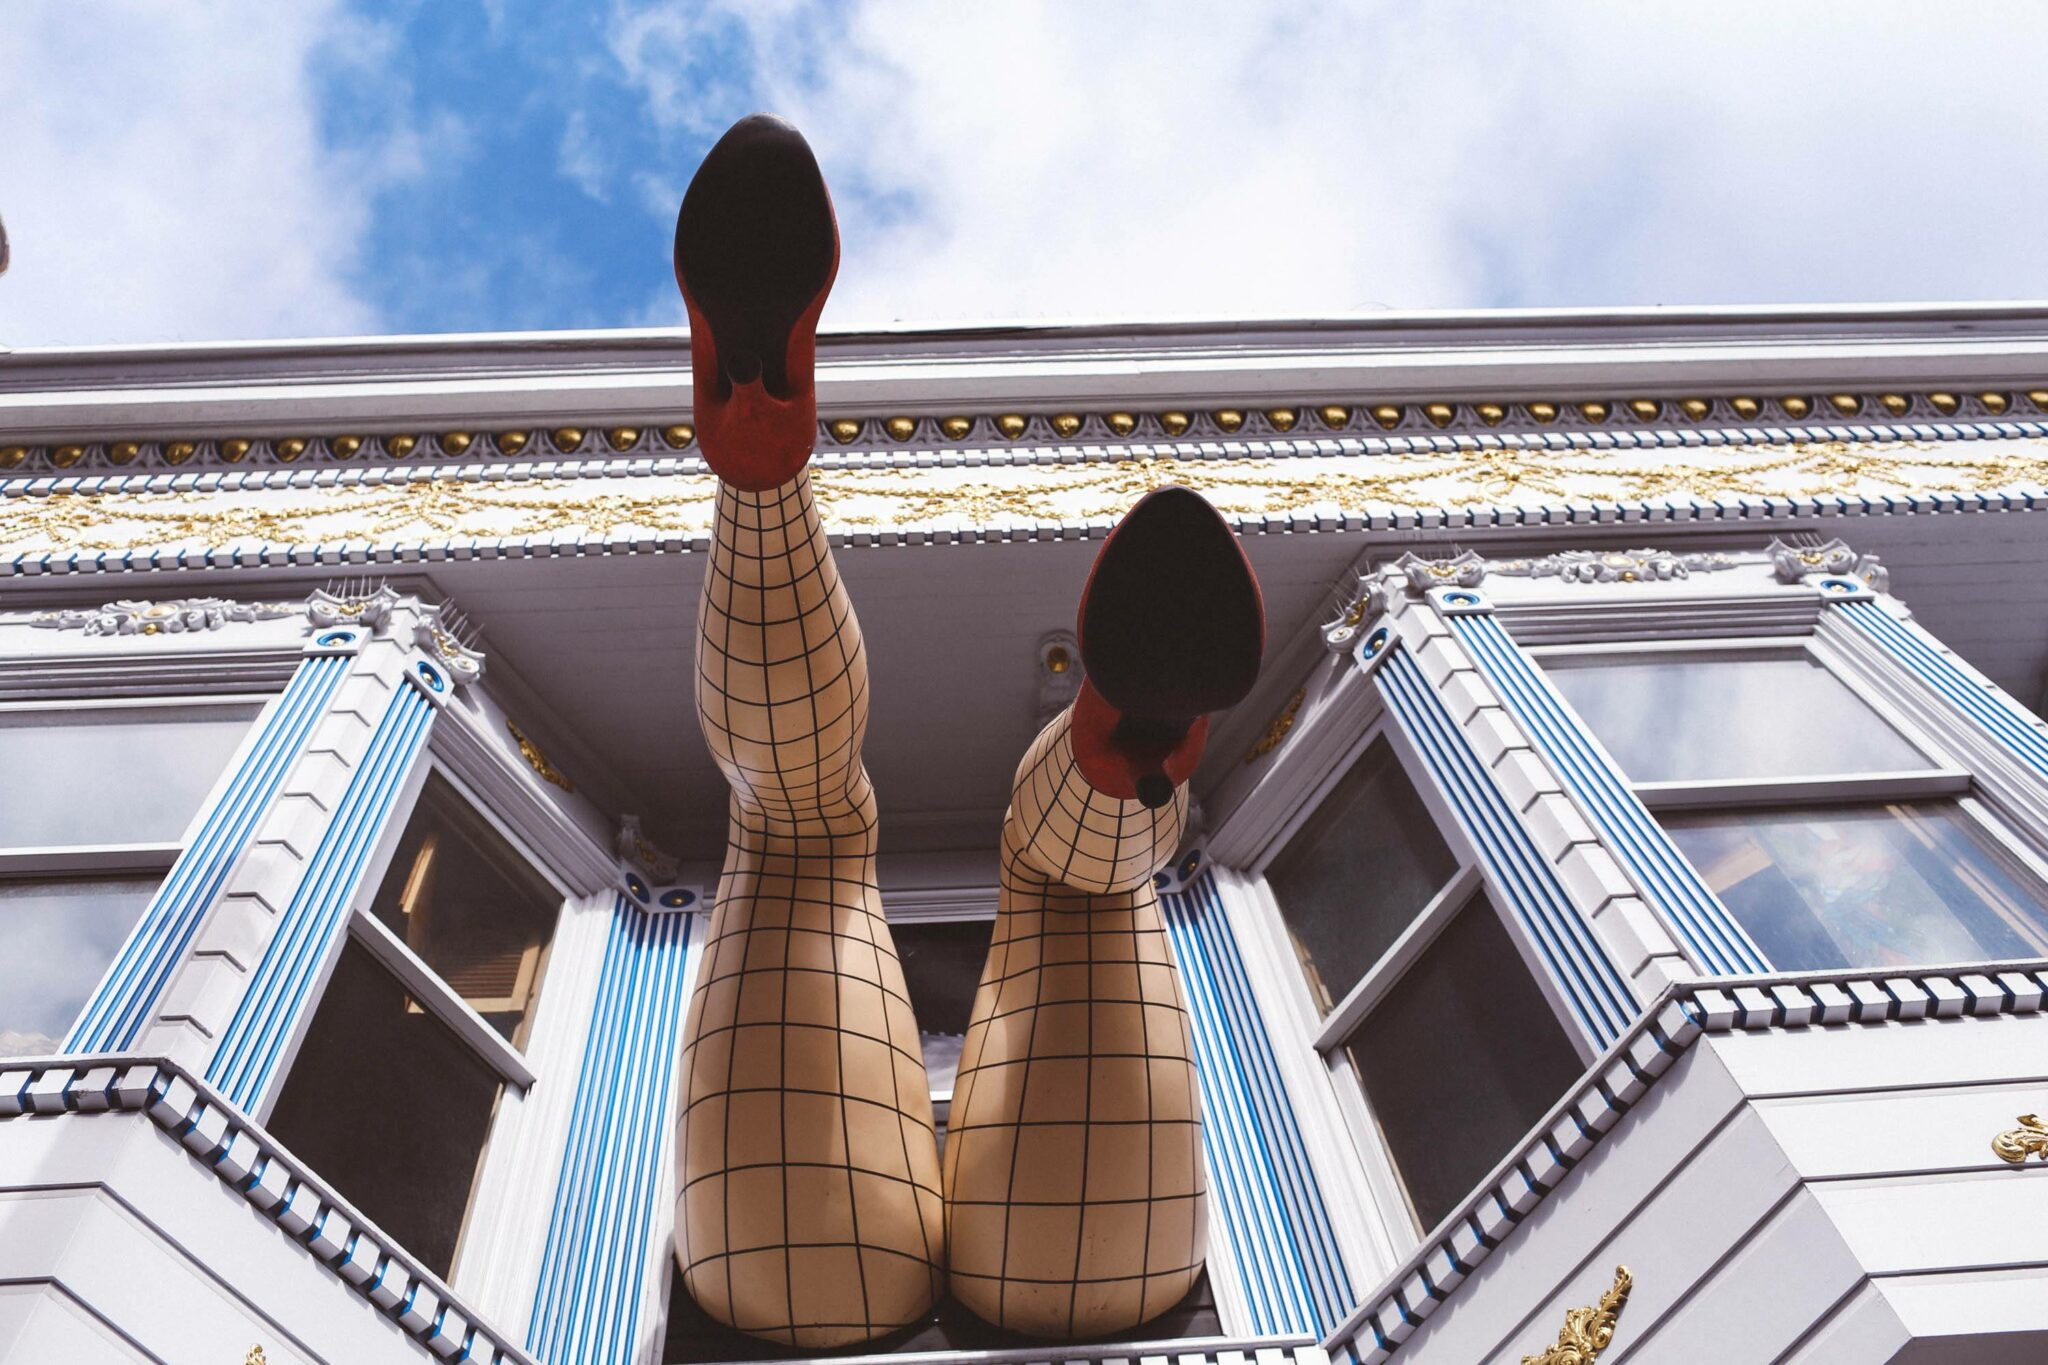 san francisco haight legs window